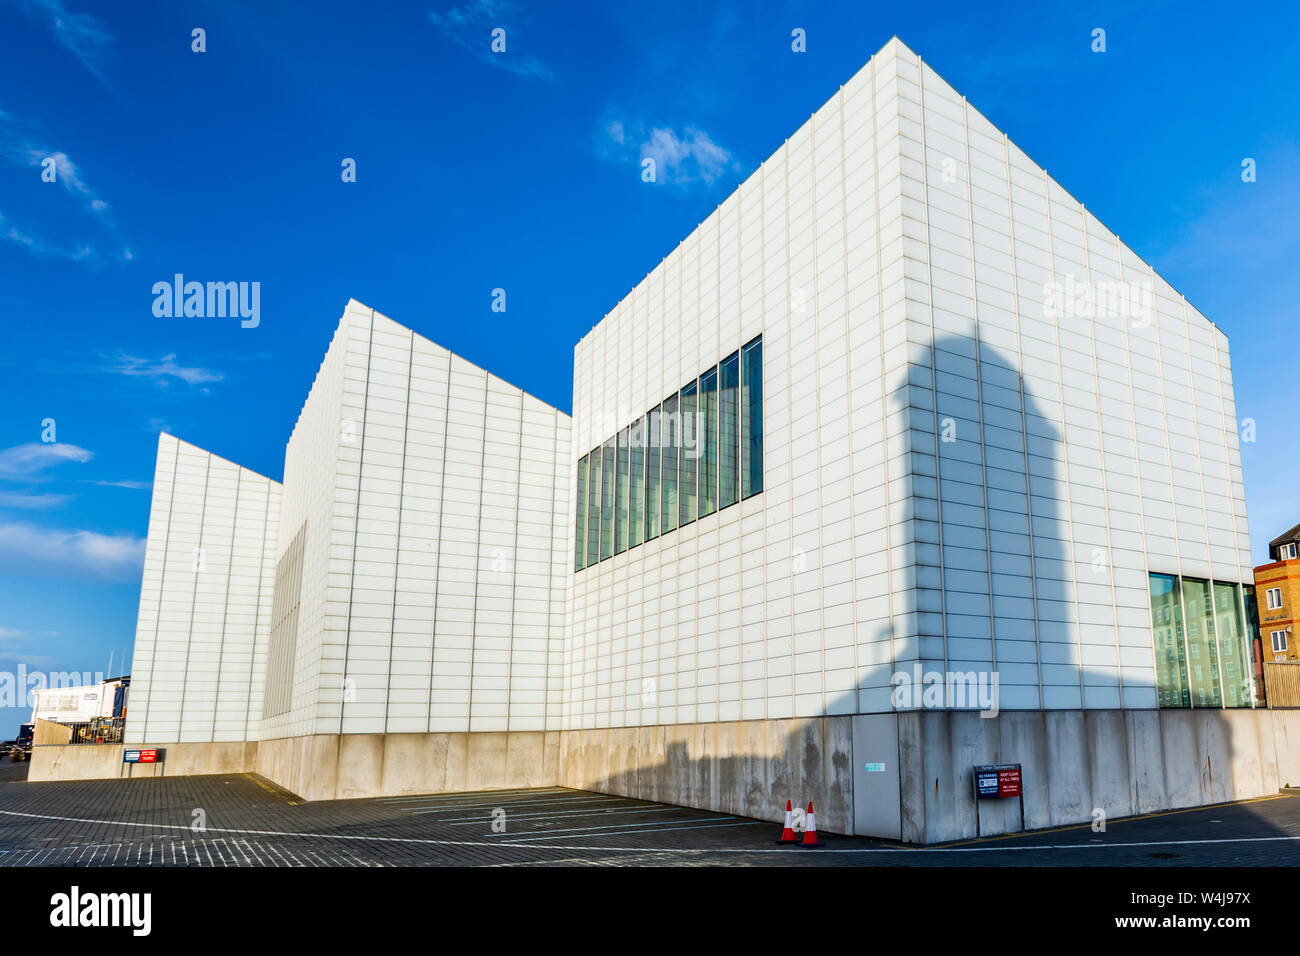 Notable buildings in Margate Stock Photo